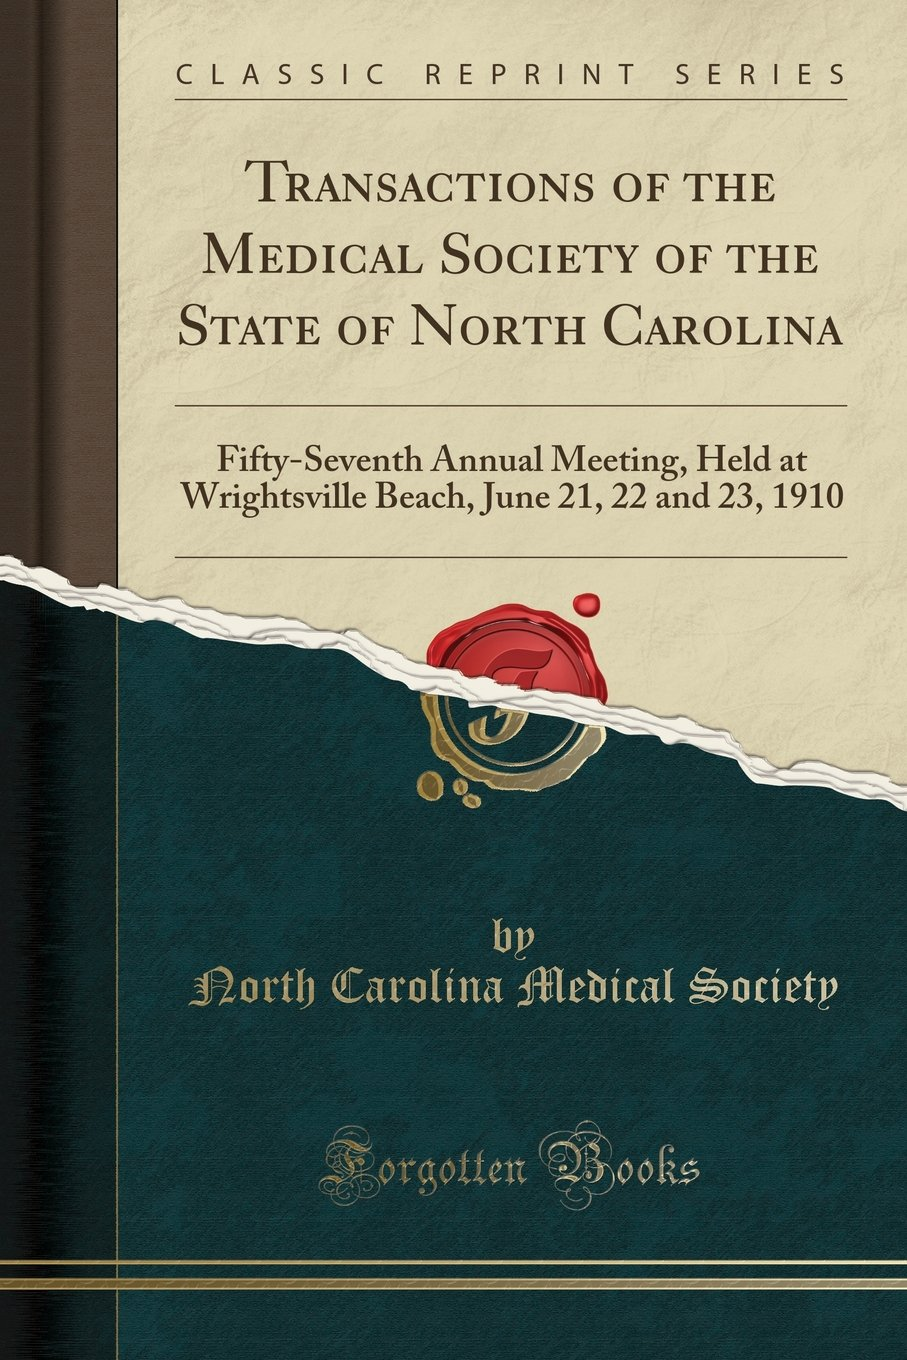 Transactions of the Medical Society of the State of North Carolina: Fifty-Seventh Annual Meeting, Held at Wrightsville Beach, June 21, 22 and 23, 1910 (Classic Reprint) pdf epub